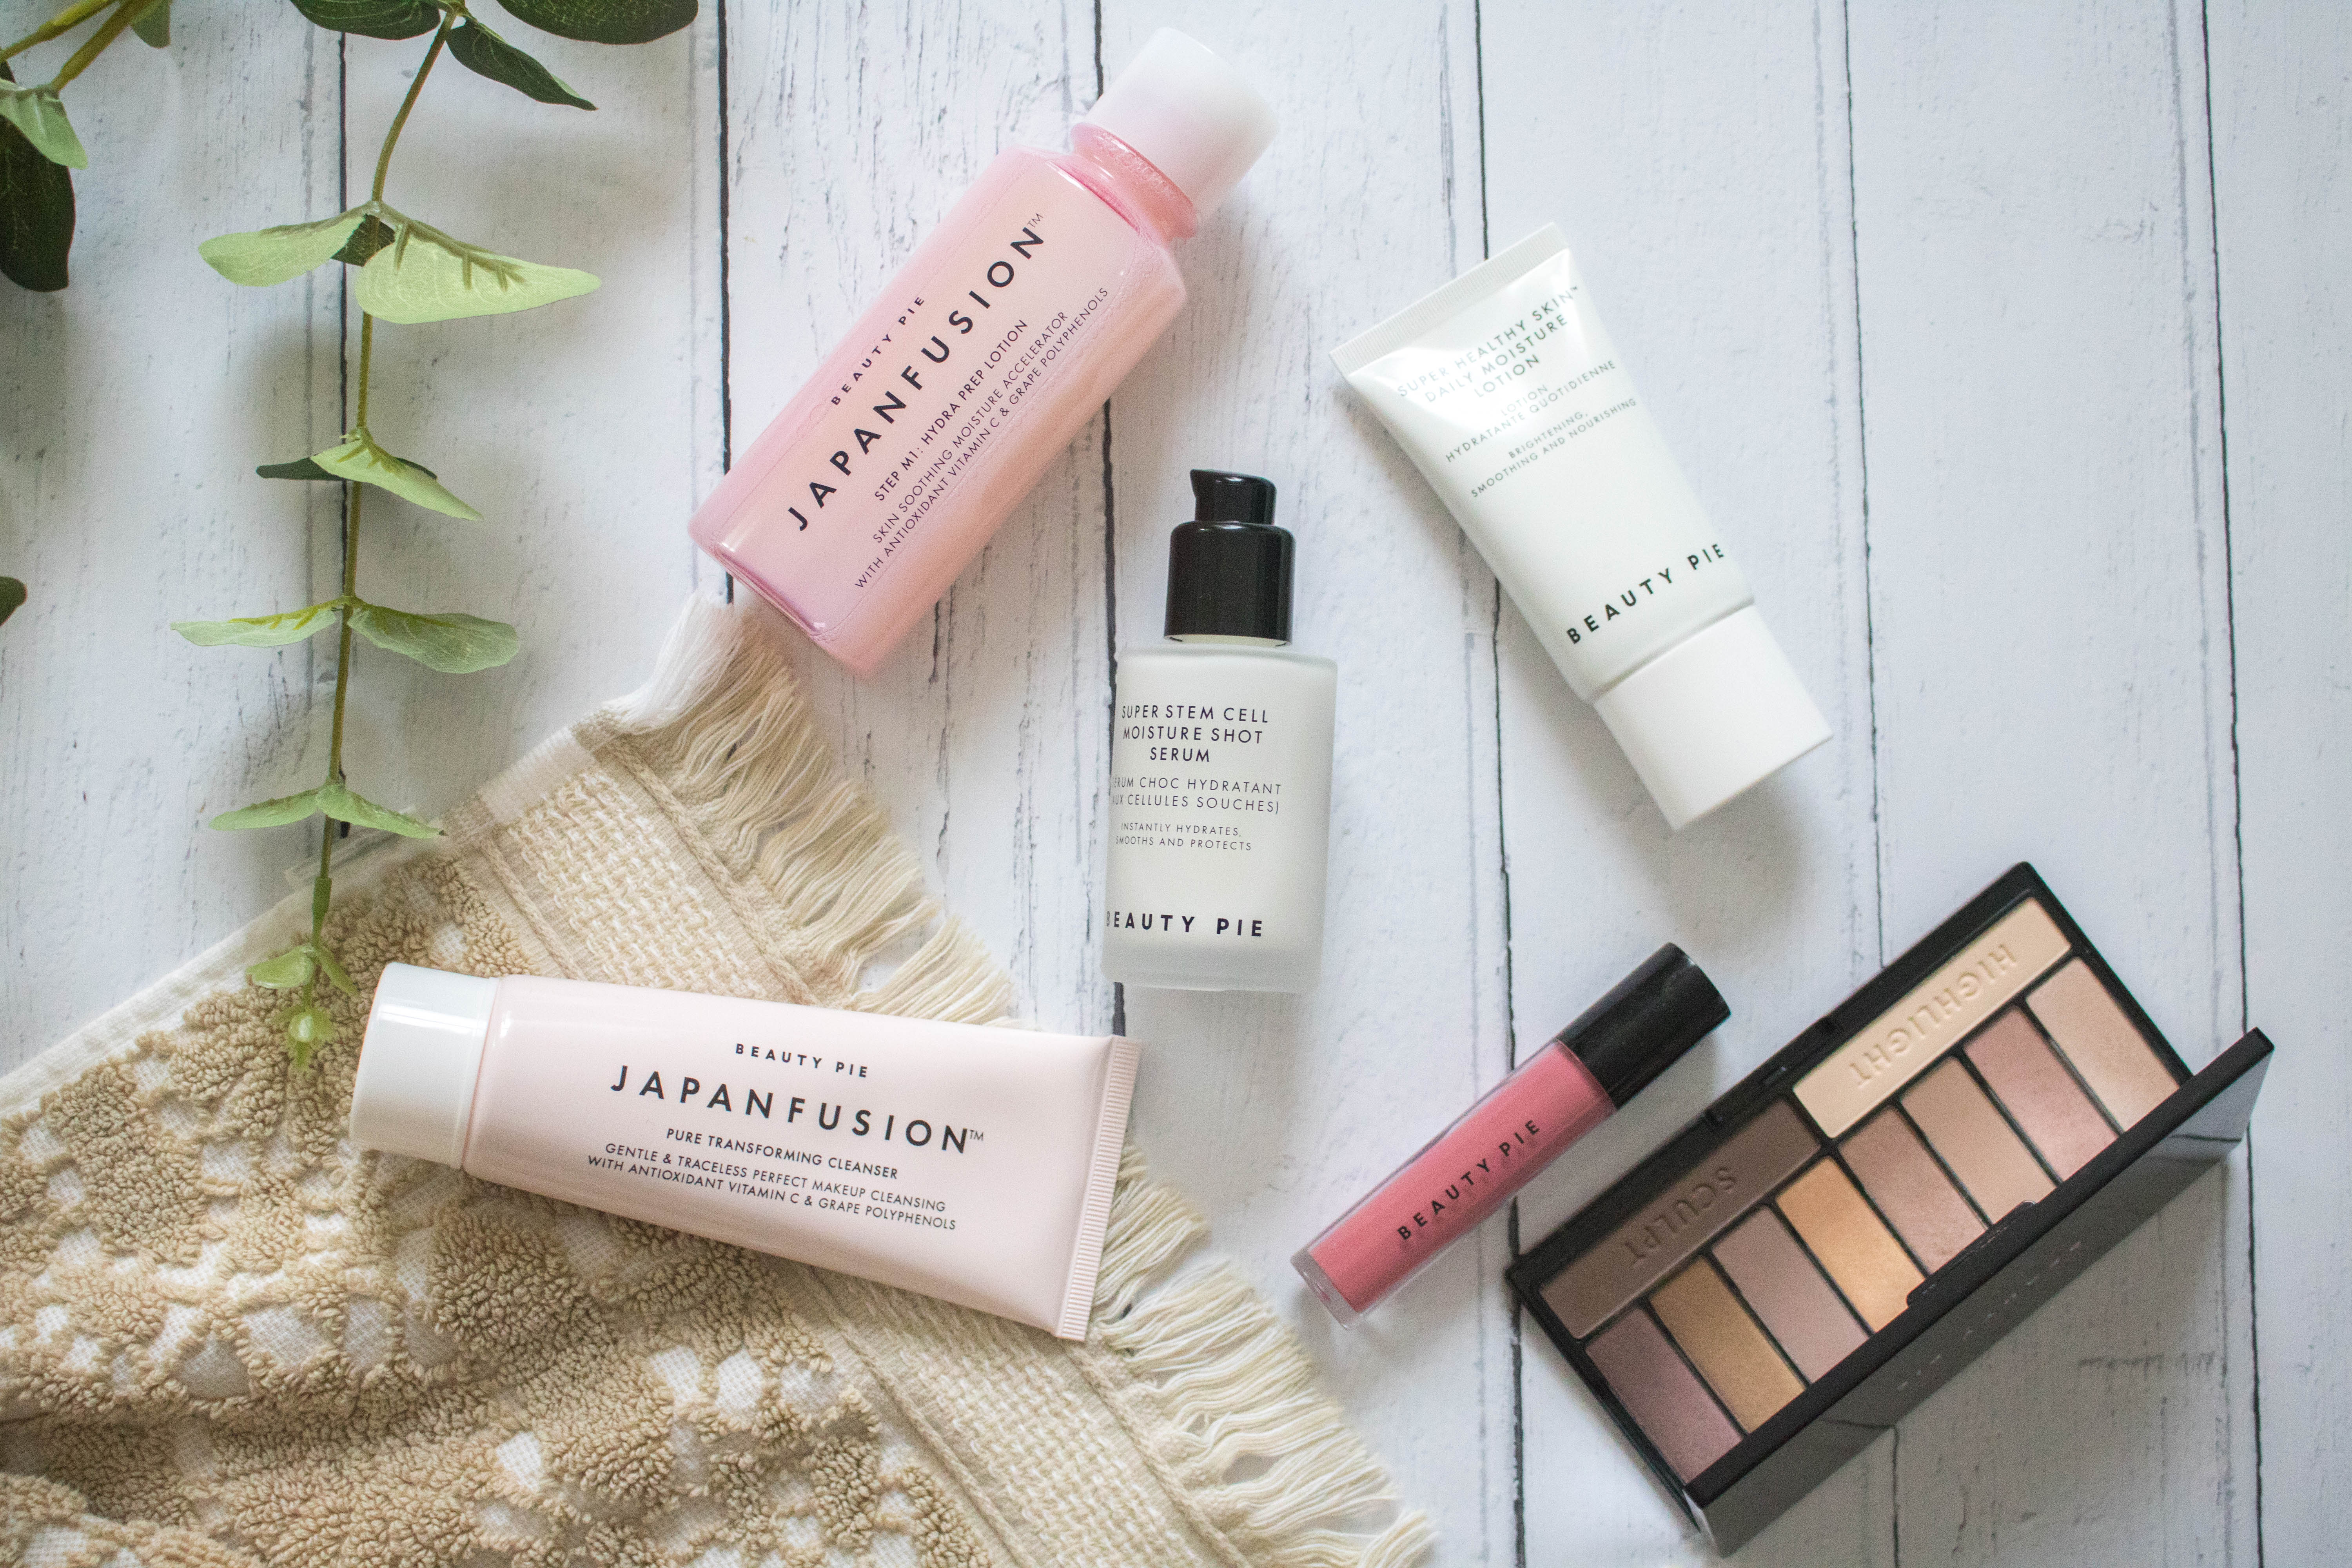 champagne lifestyle skincare beauty pie